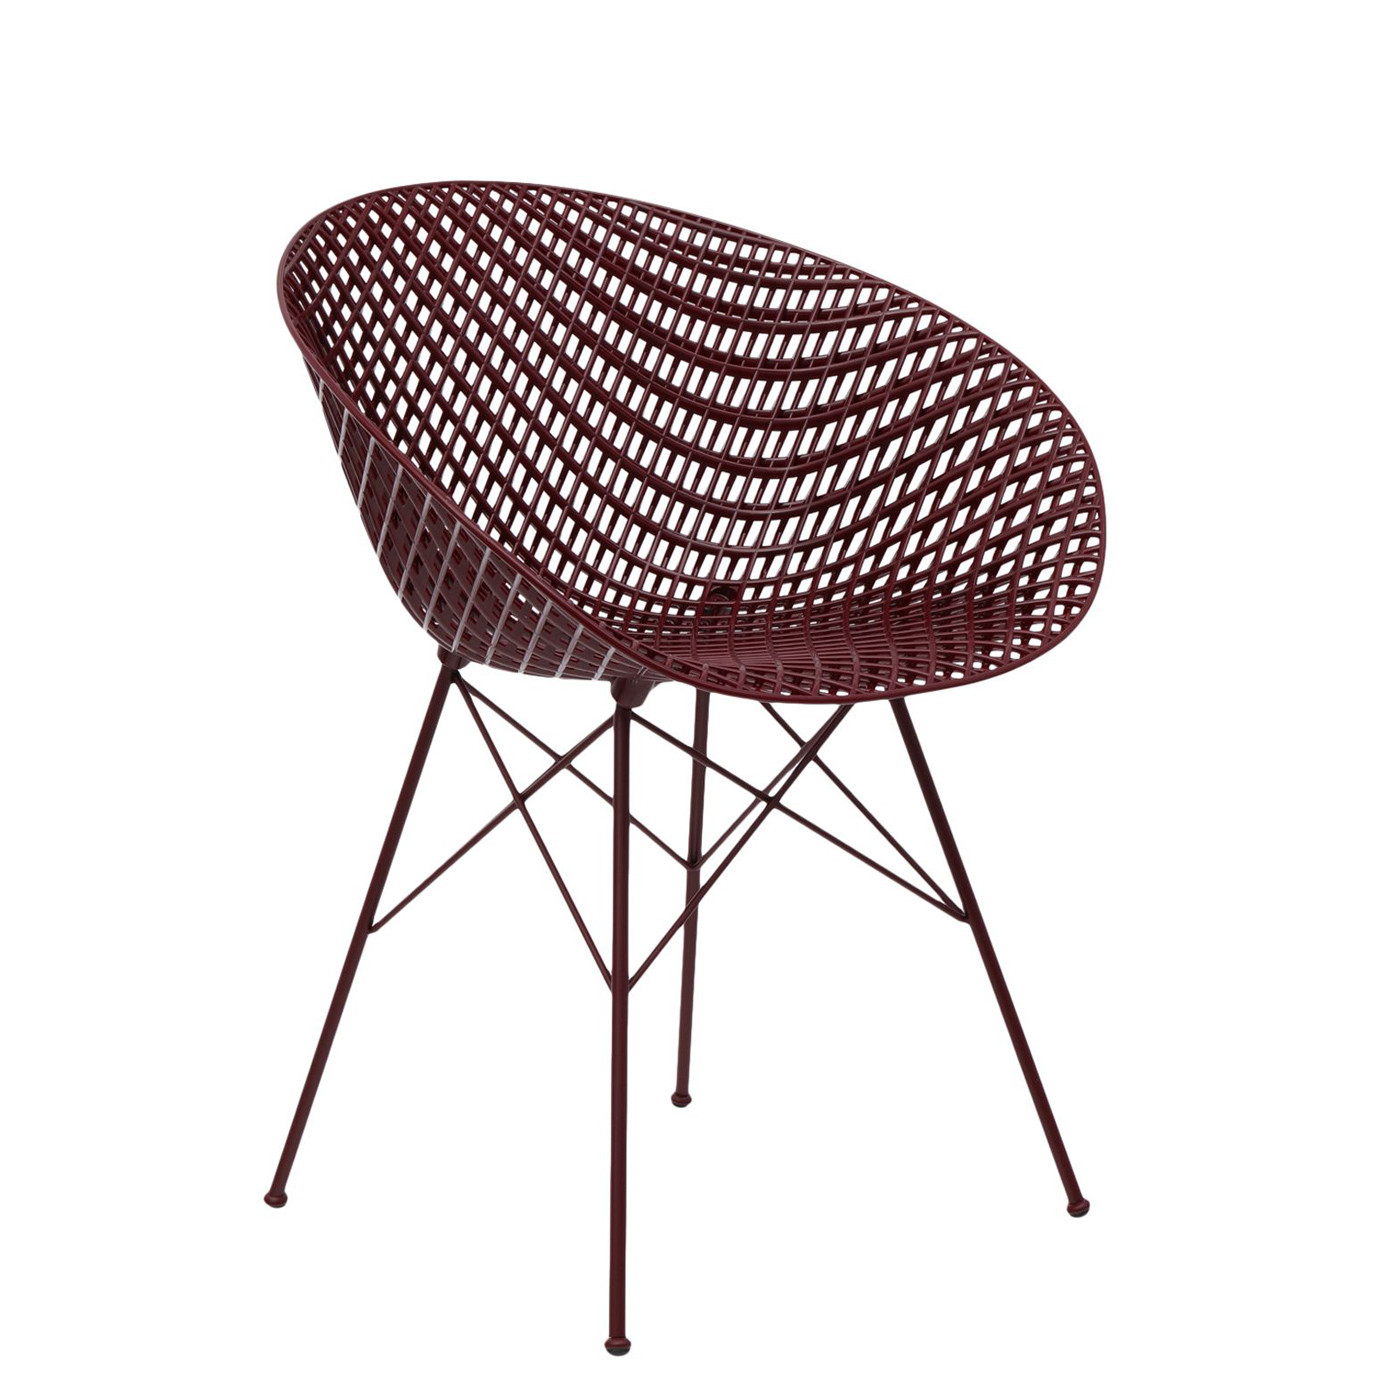 Astounding Kartell Matrix Outdoor Chair Inzonedesignstudio Interior Chair Design Inzonedesignstudiocom